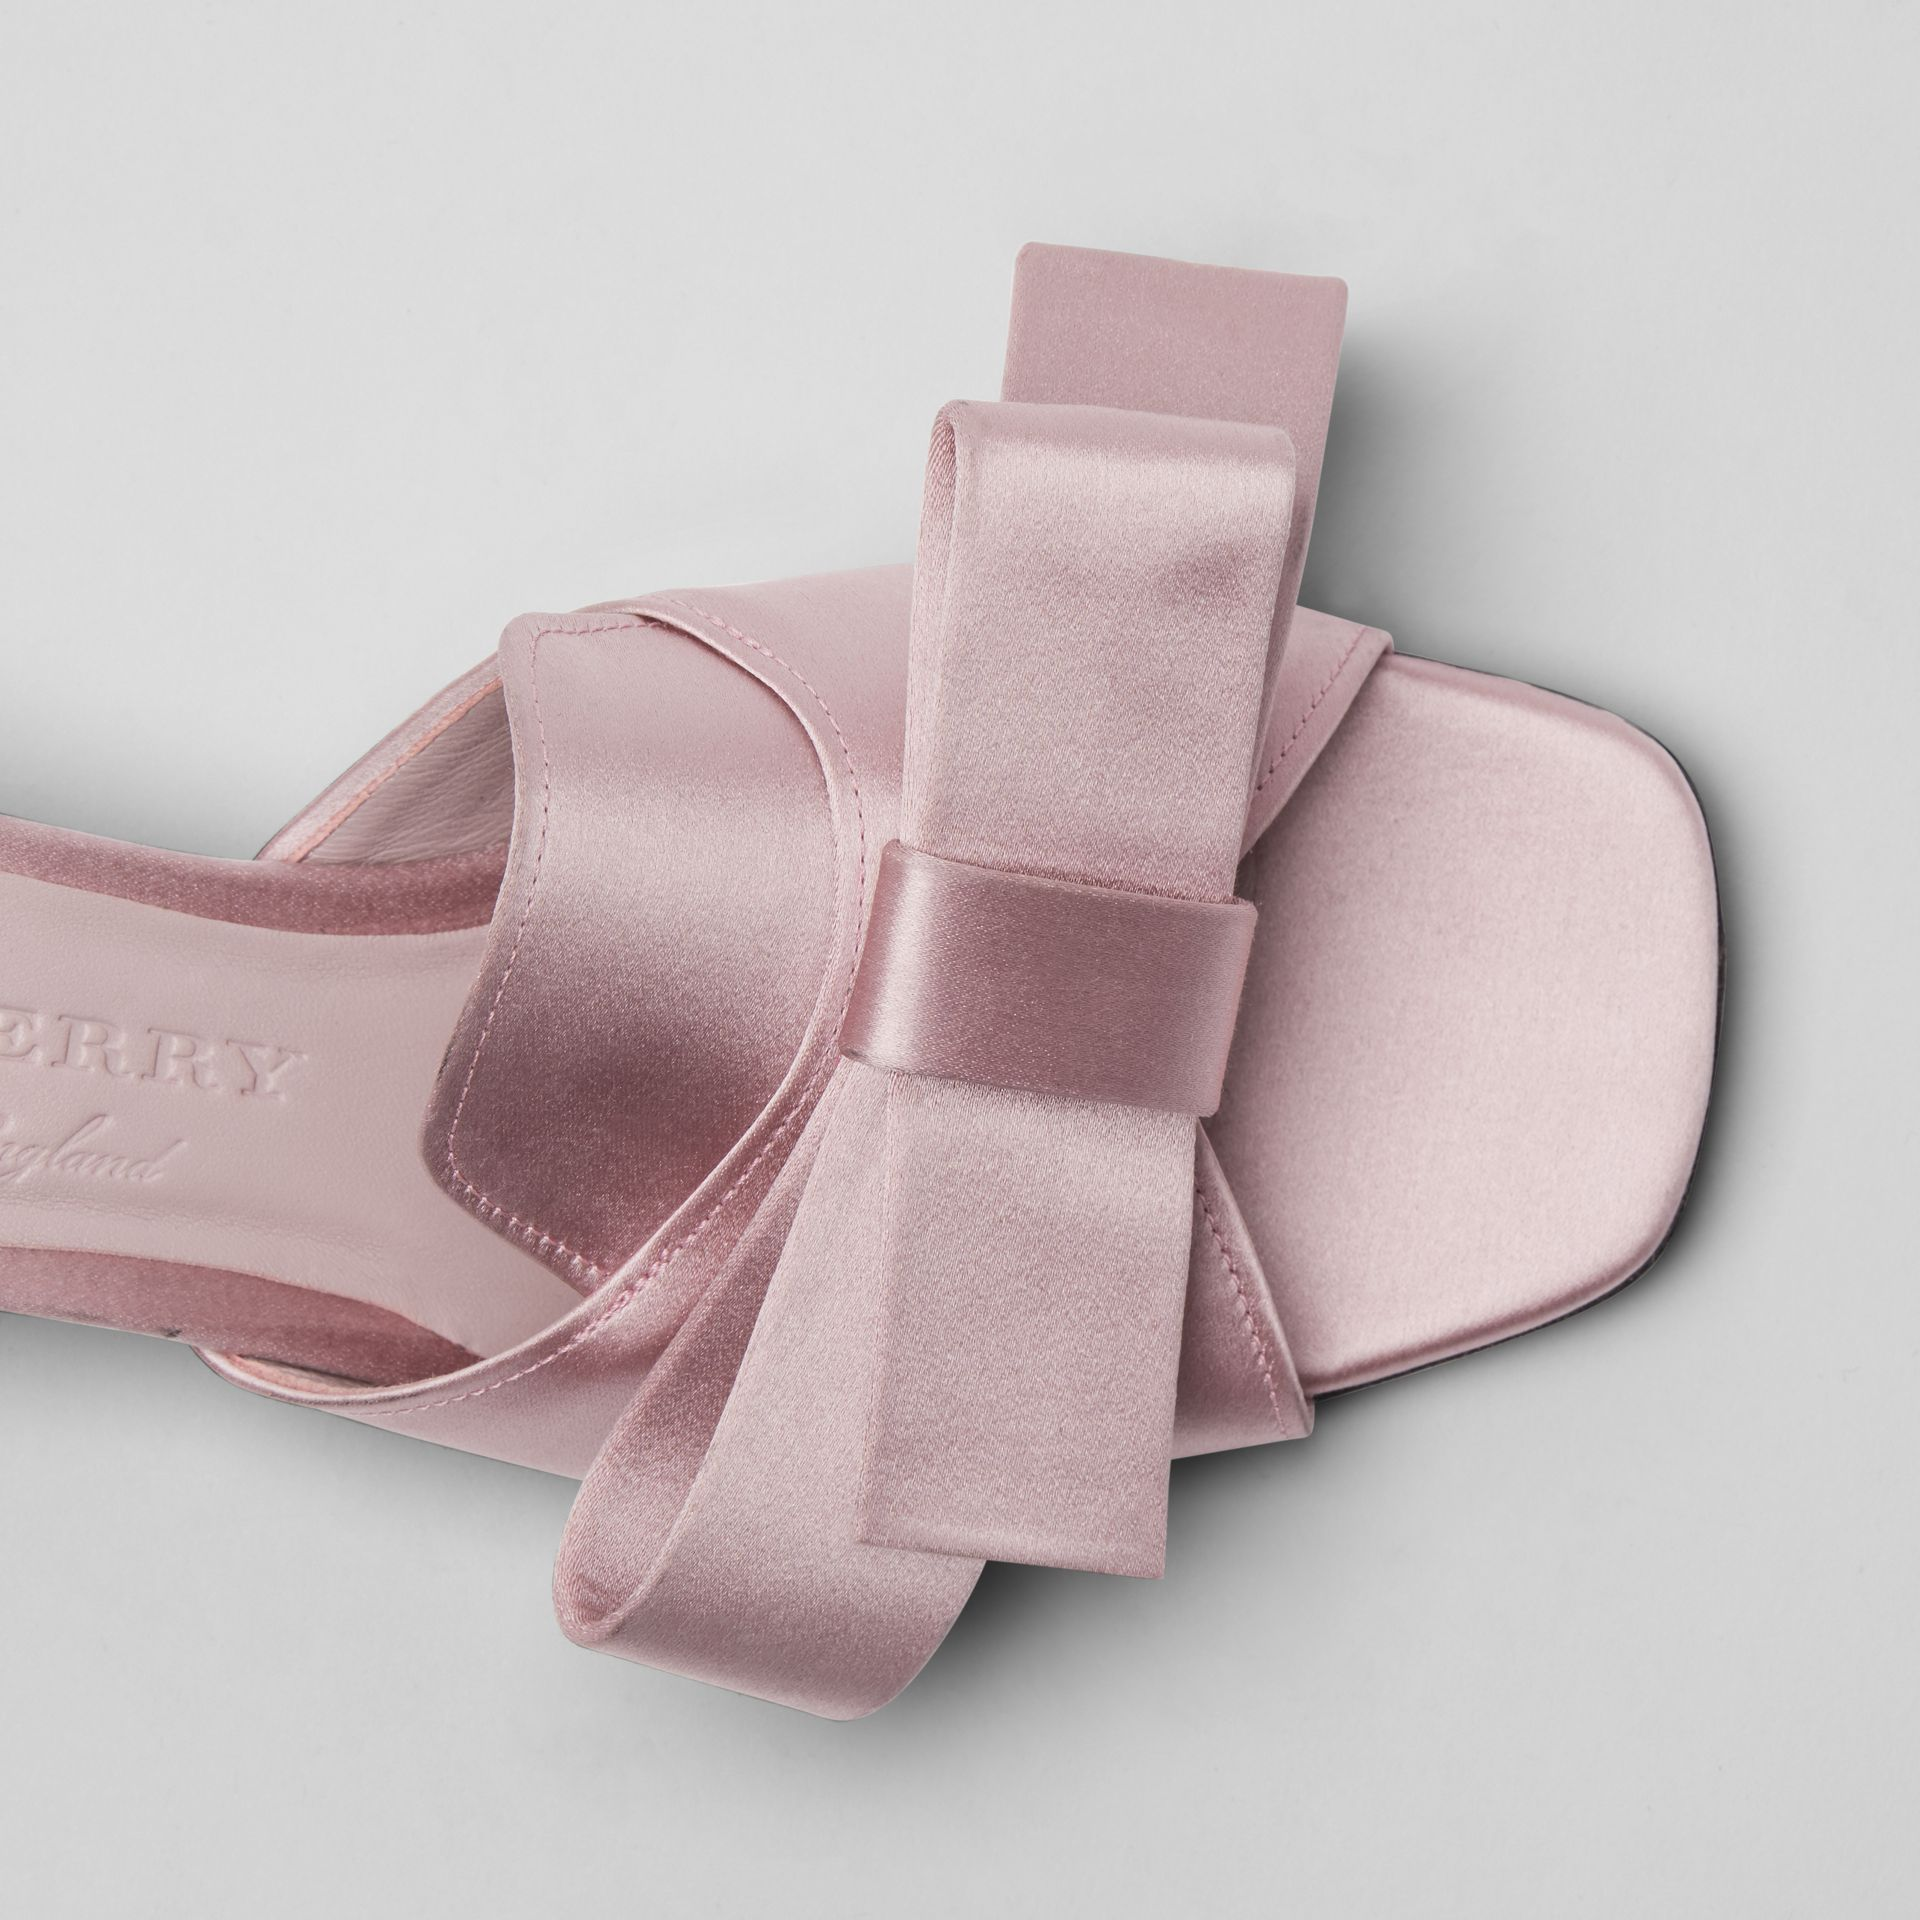 Bow Detail Satin Block-heel Mules in Light Pink Melange - Women | Burberry United Kingdom - gallery image 1